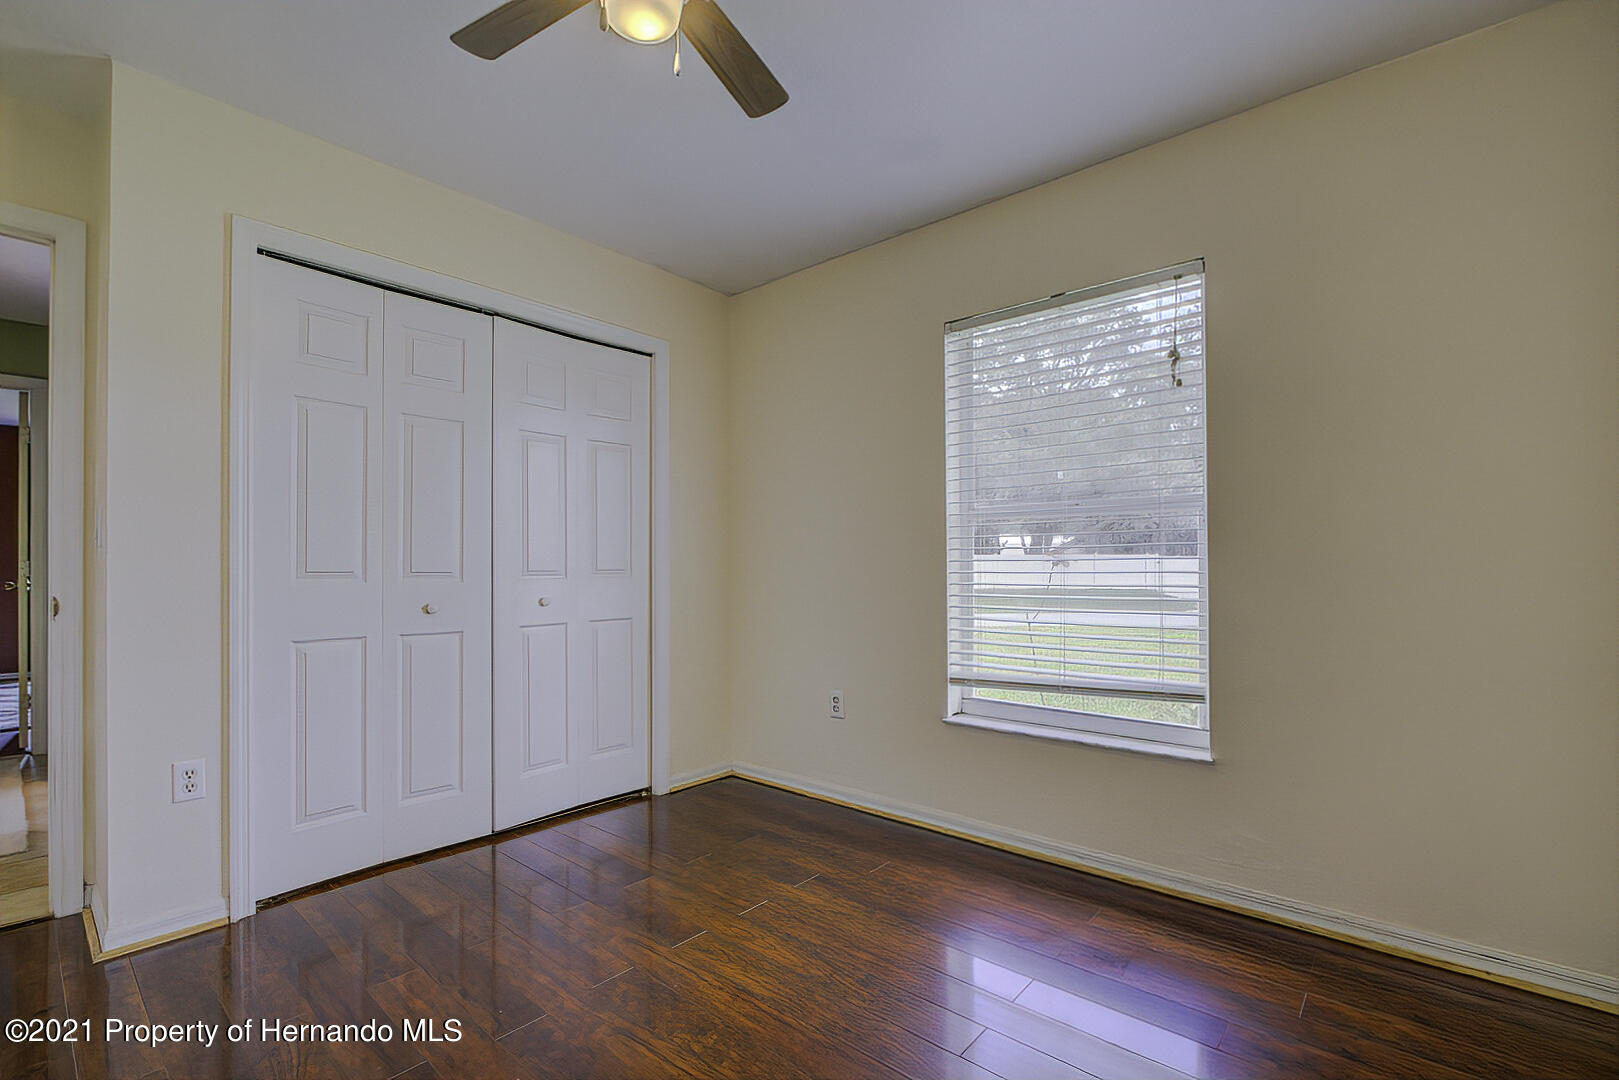 Image 15 of 27 For 12257 Genter Drive